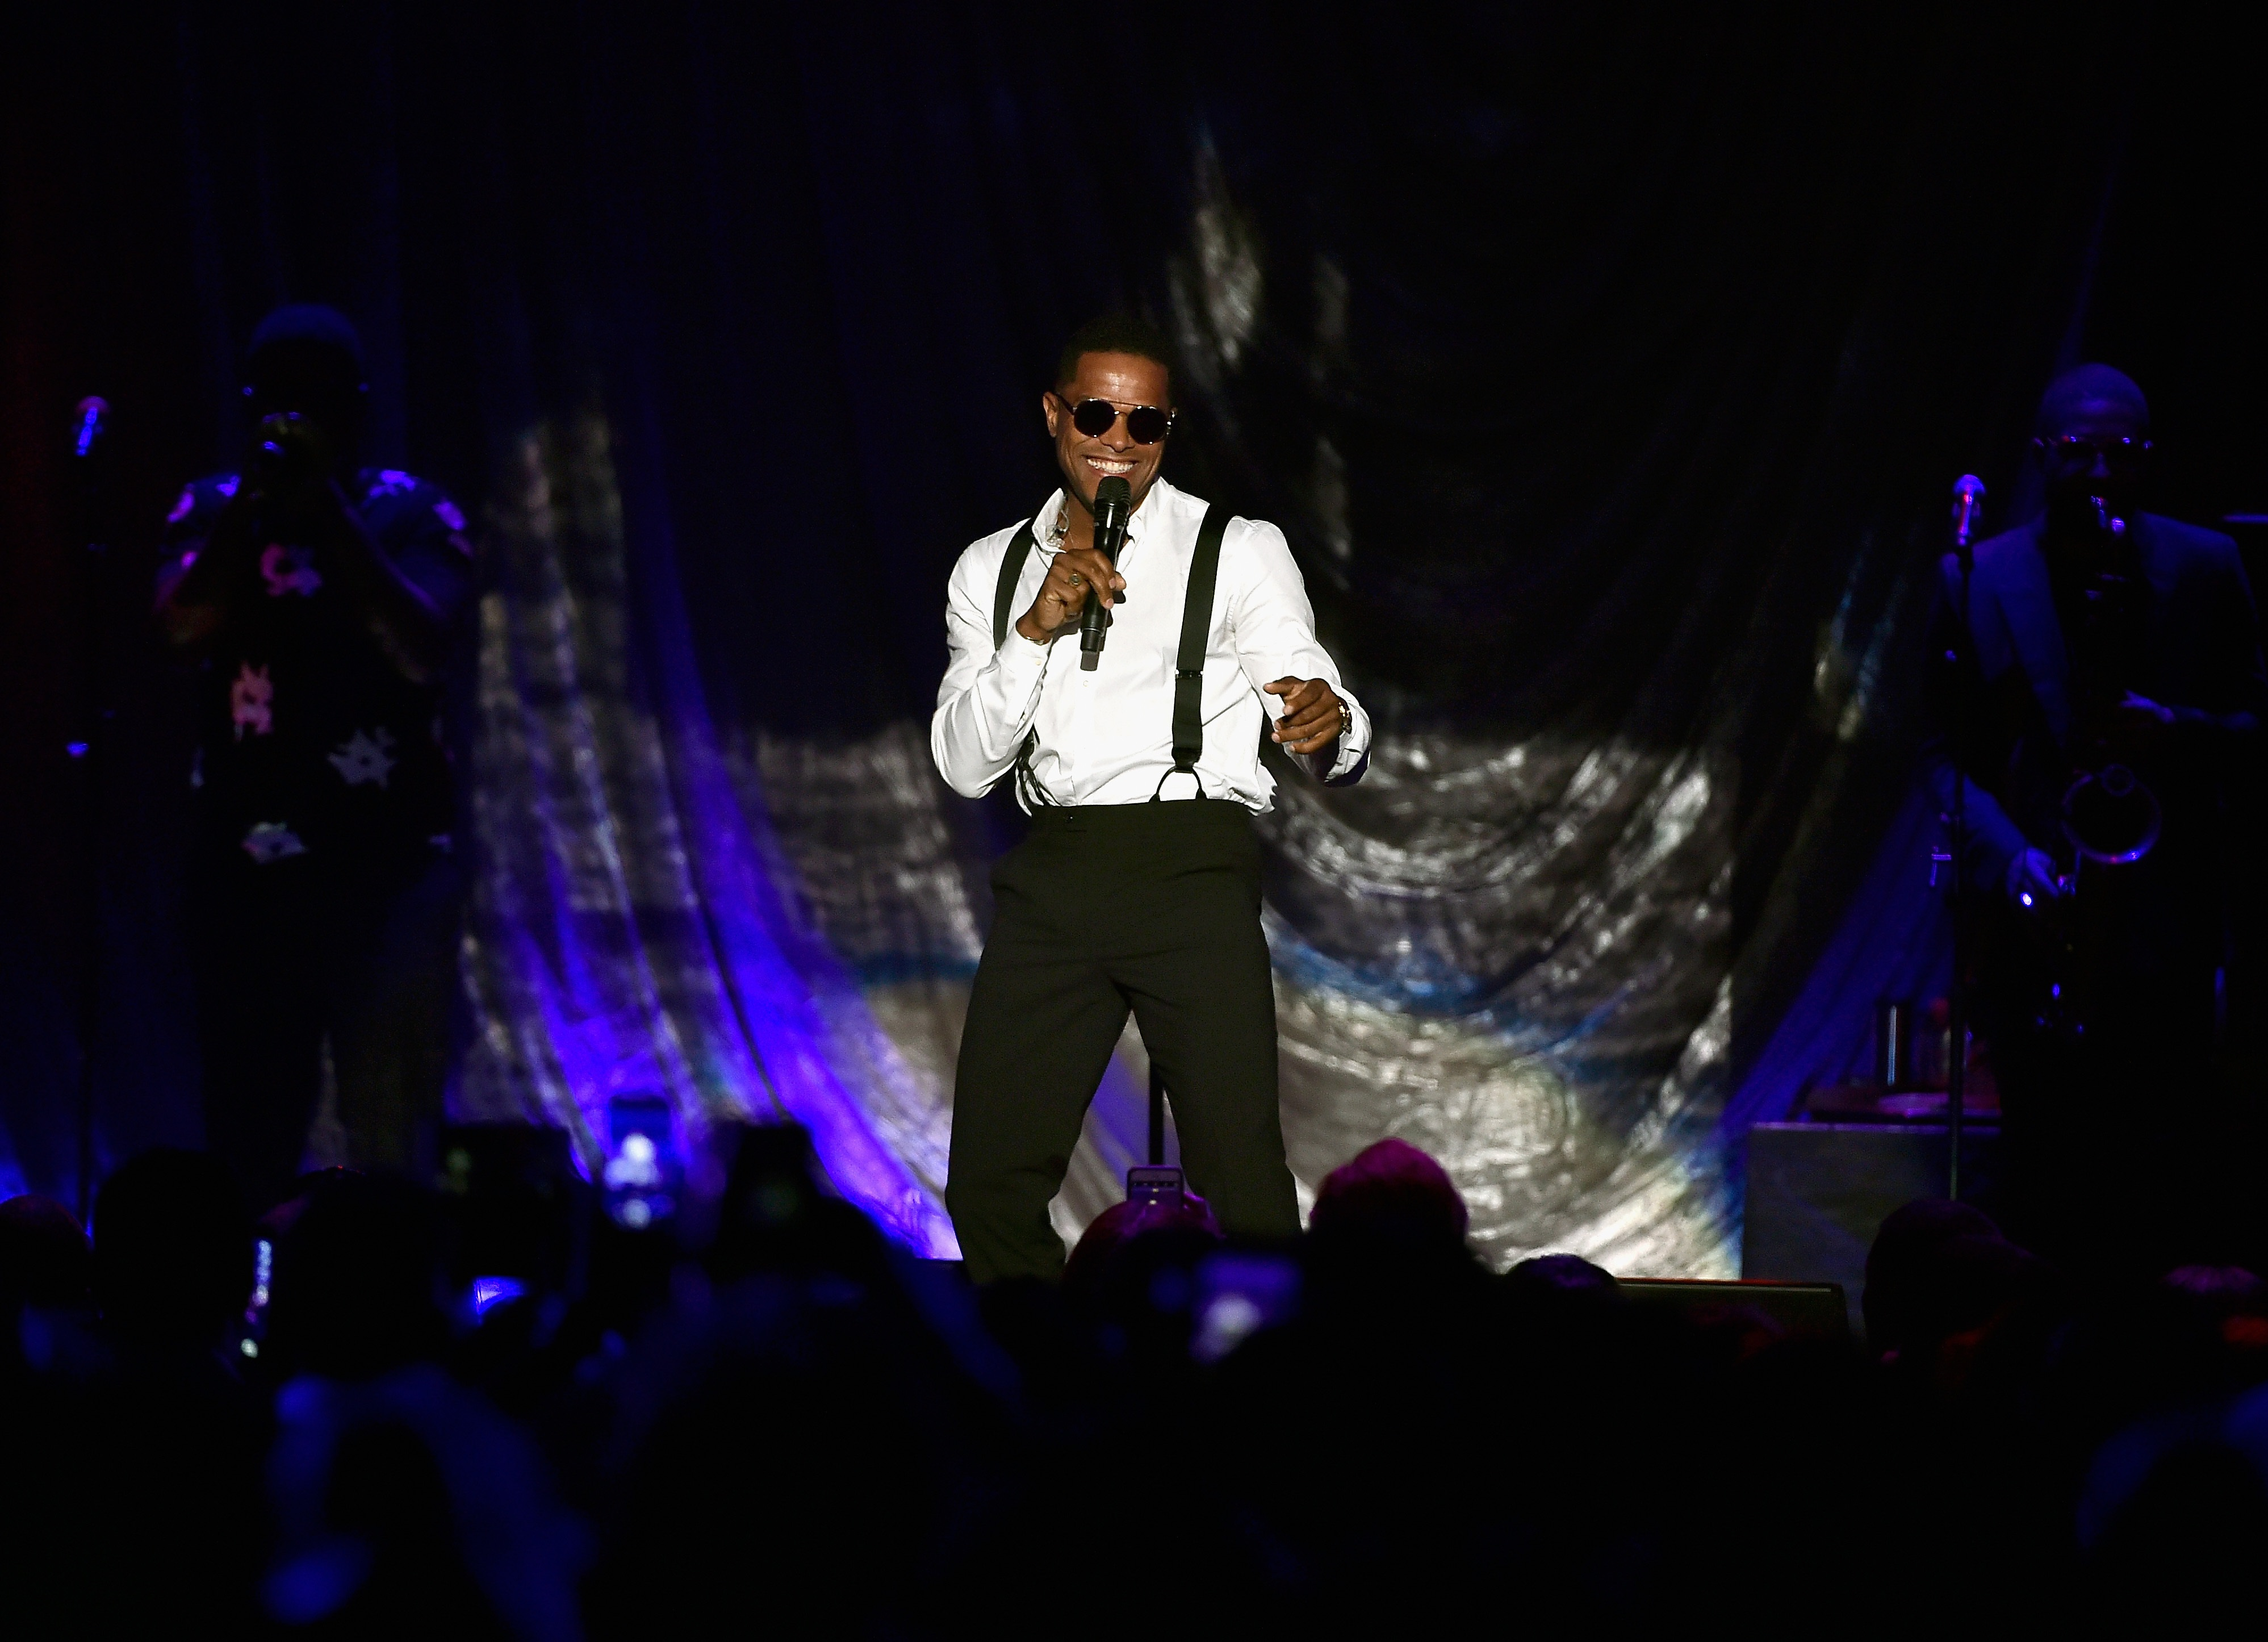 Singer Maxwell performs at The 2016 State Farm Awards, Las Vegas, NV.